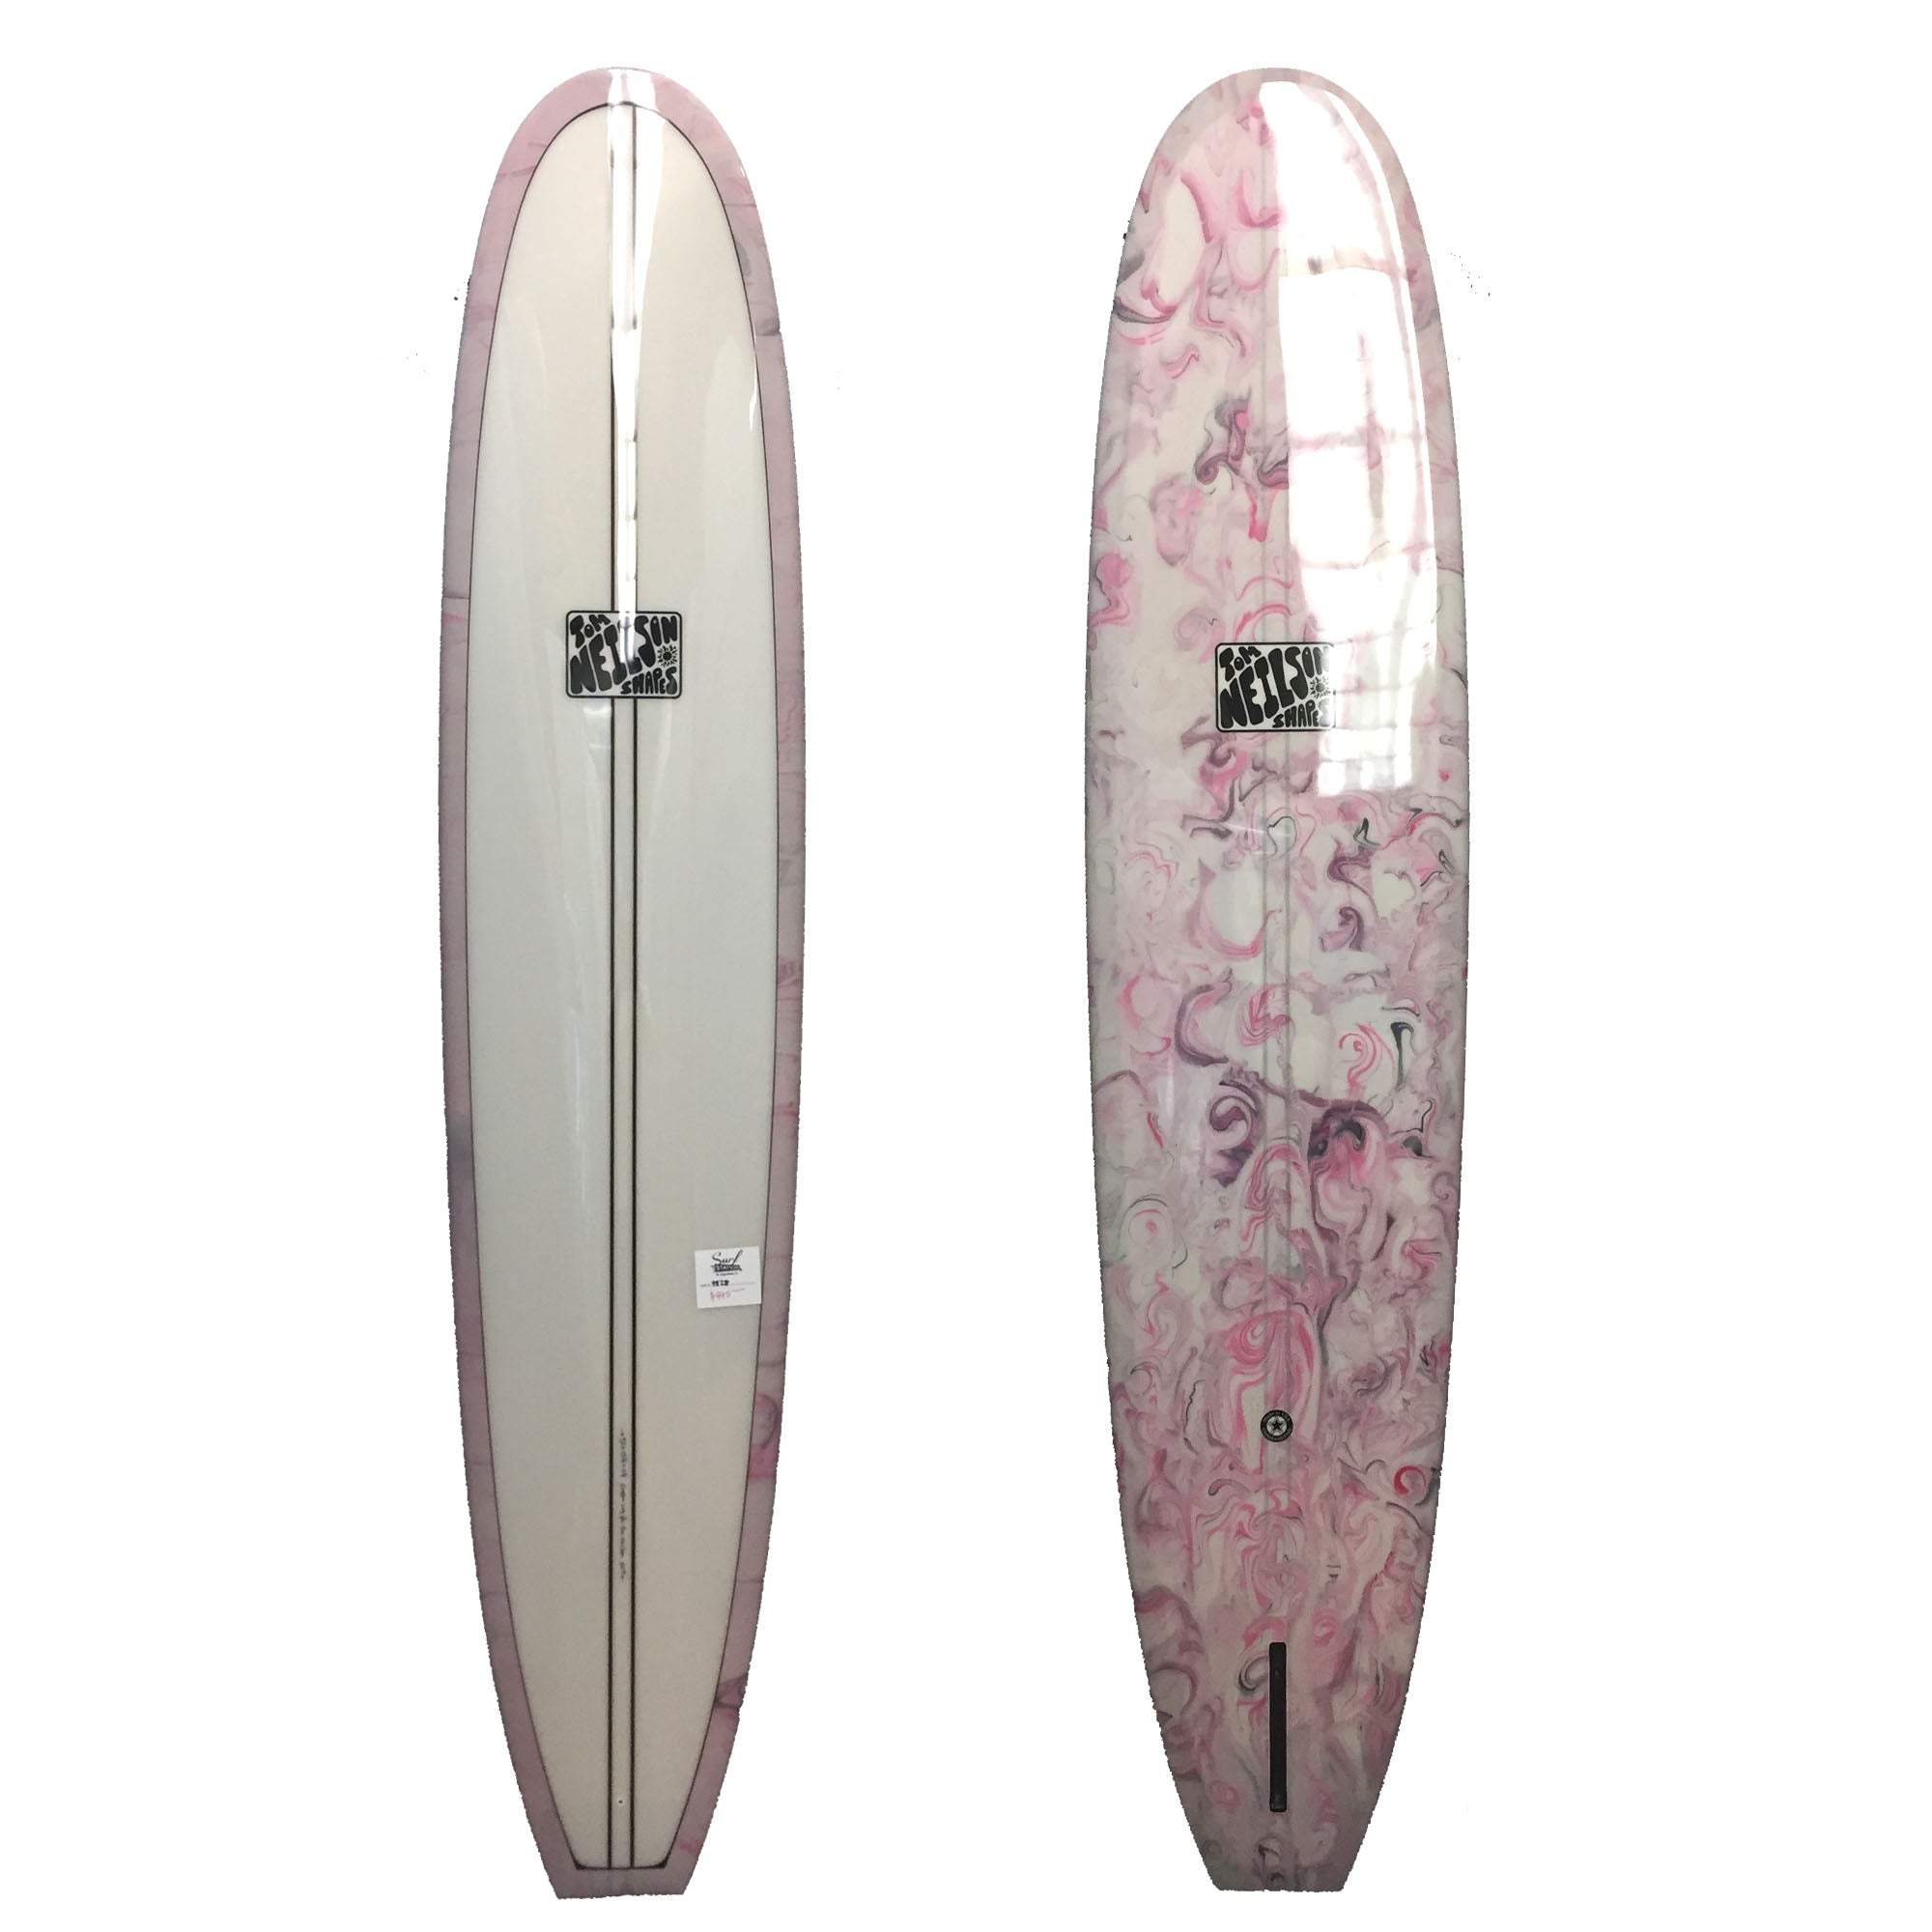 Neilson Right Coast Cruiser Surfboard